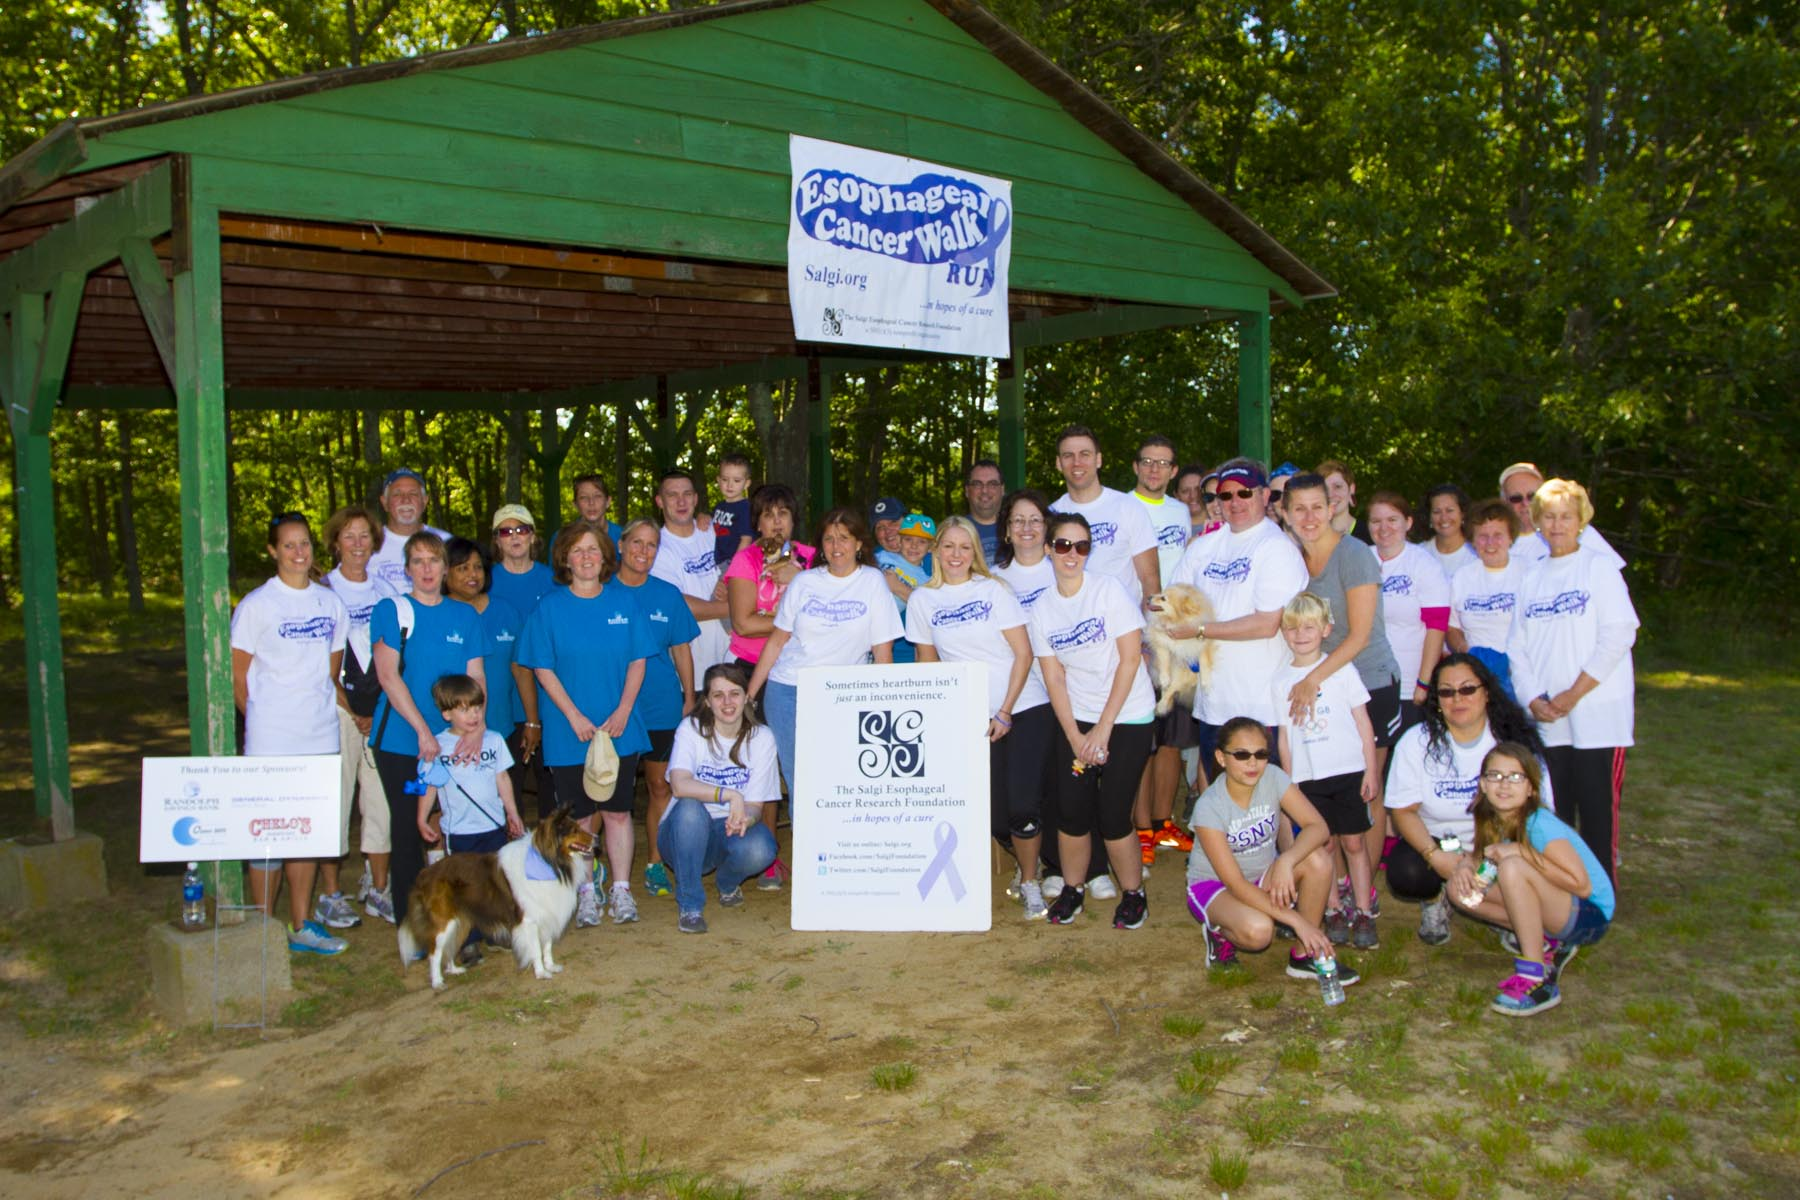 2nd Annual Esophageal Cancer Walk/Run